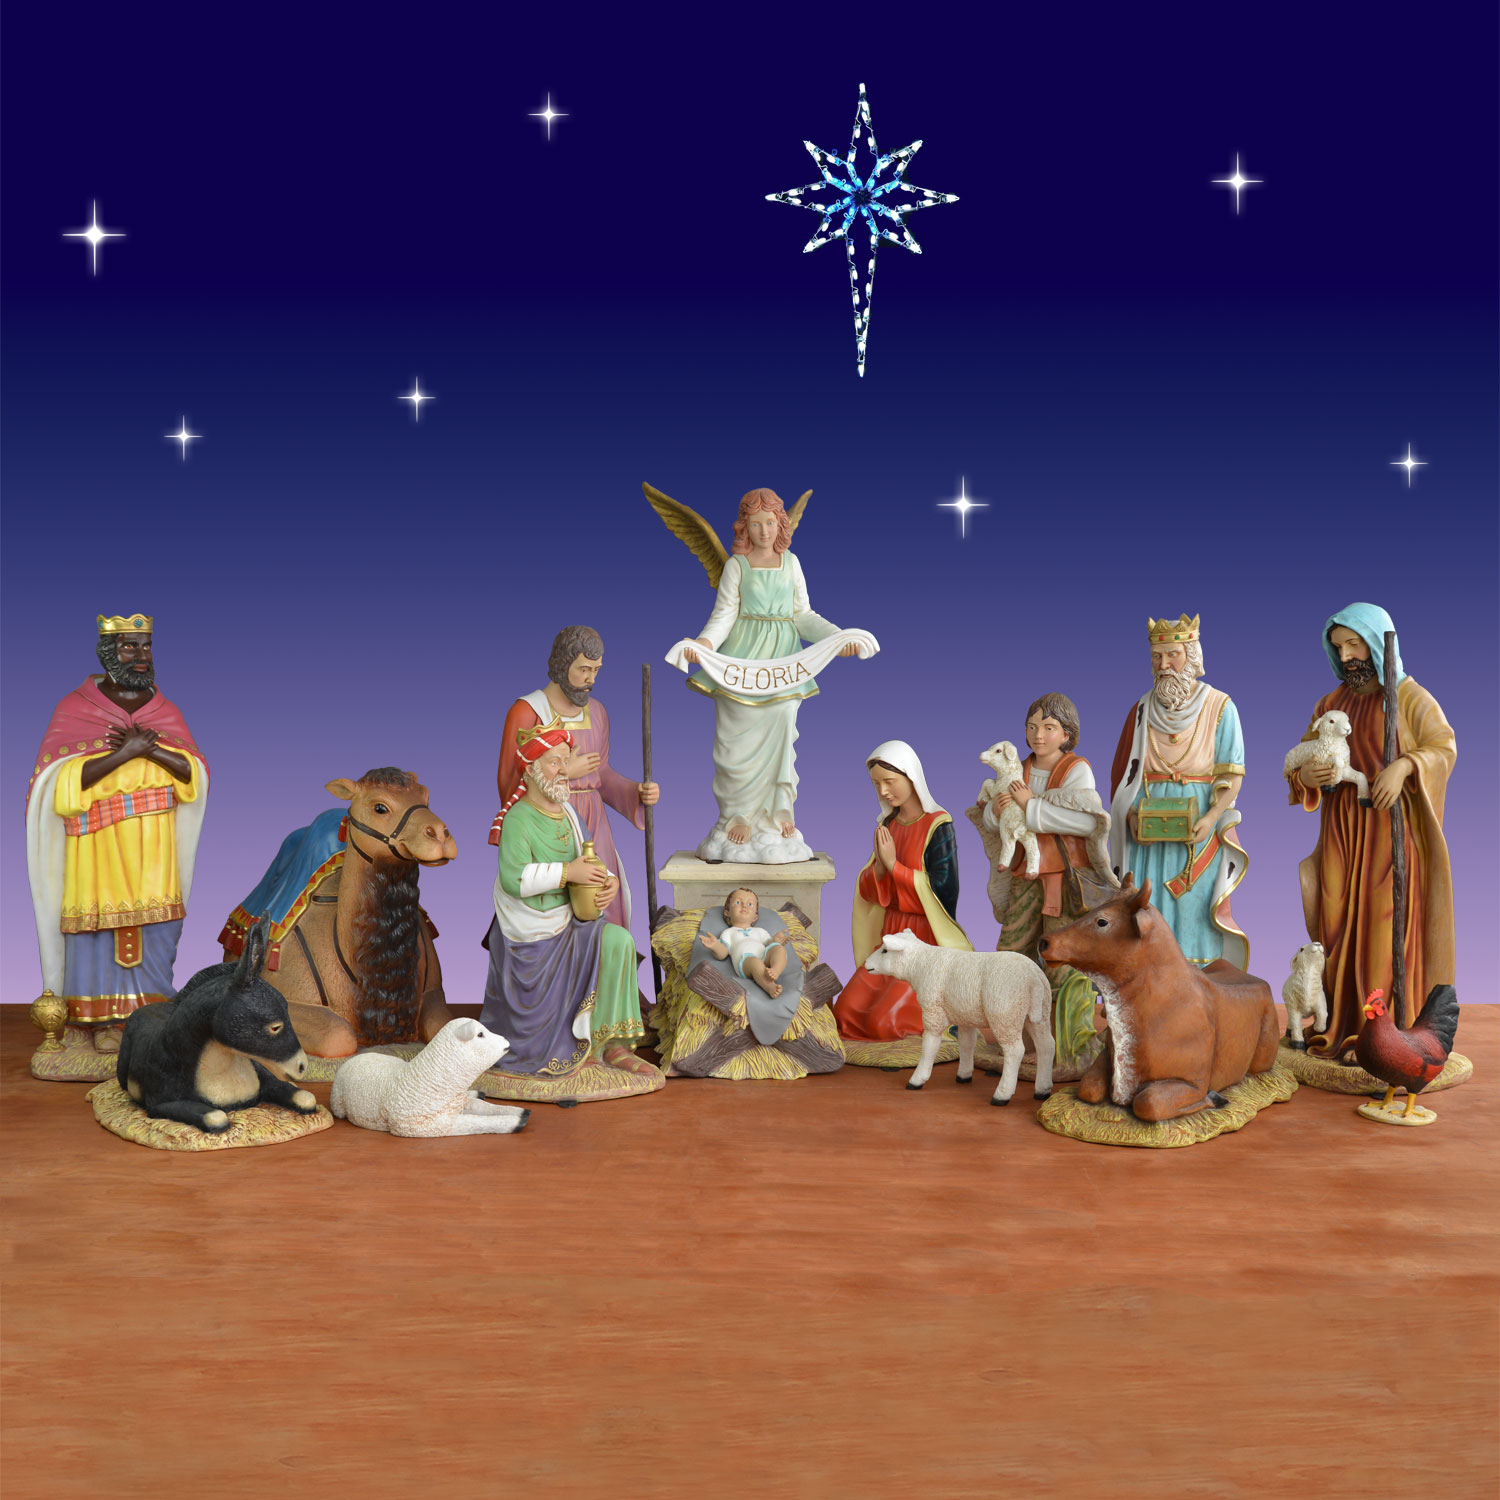 Nativity Scene Outdoor Christmas Decoration: Nativity Scenes And Decor